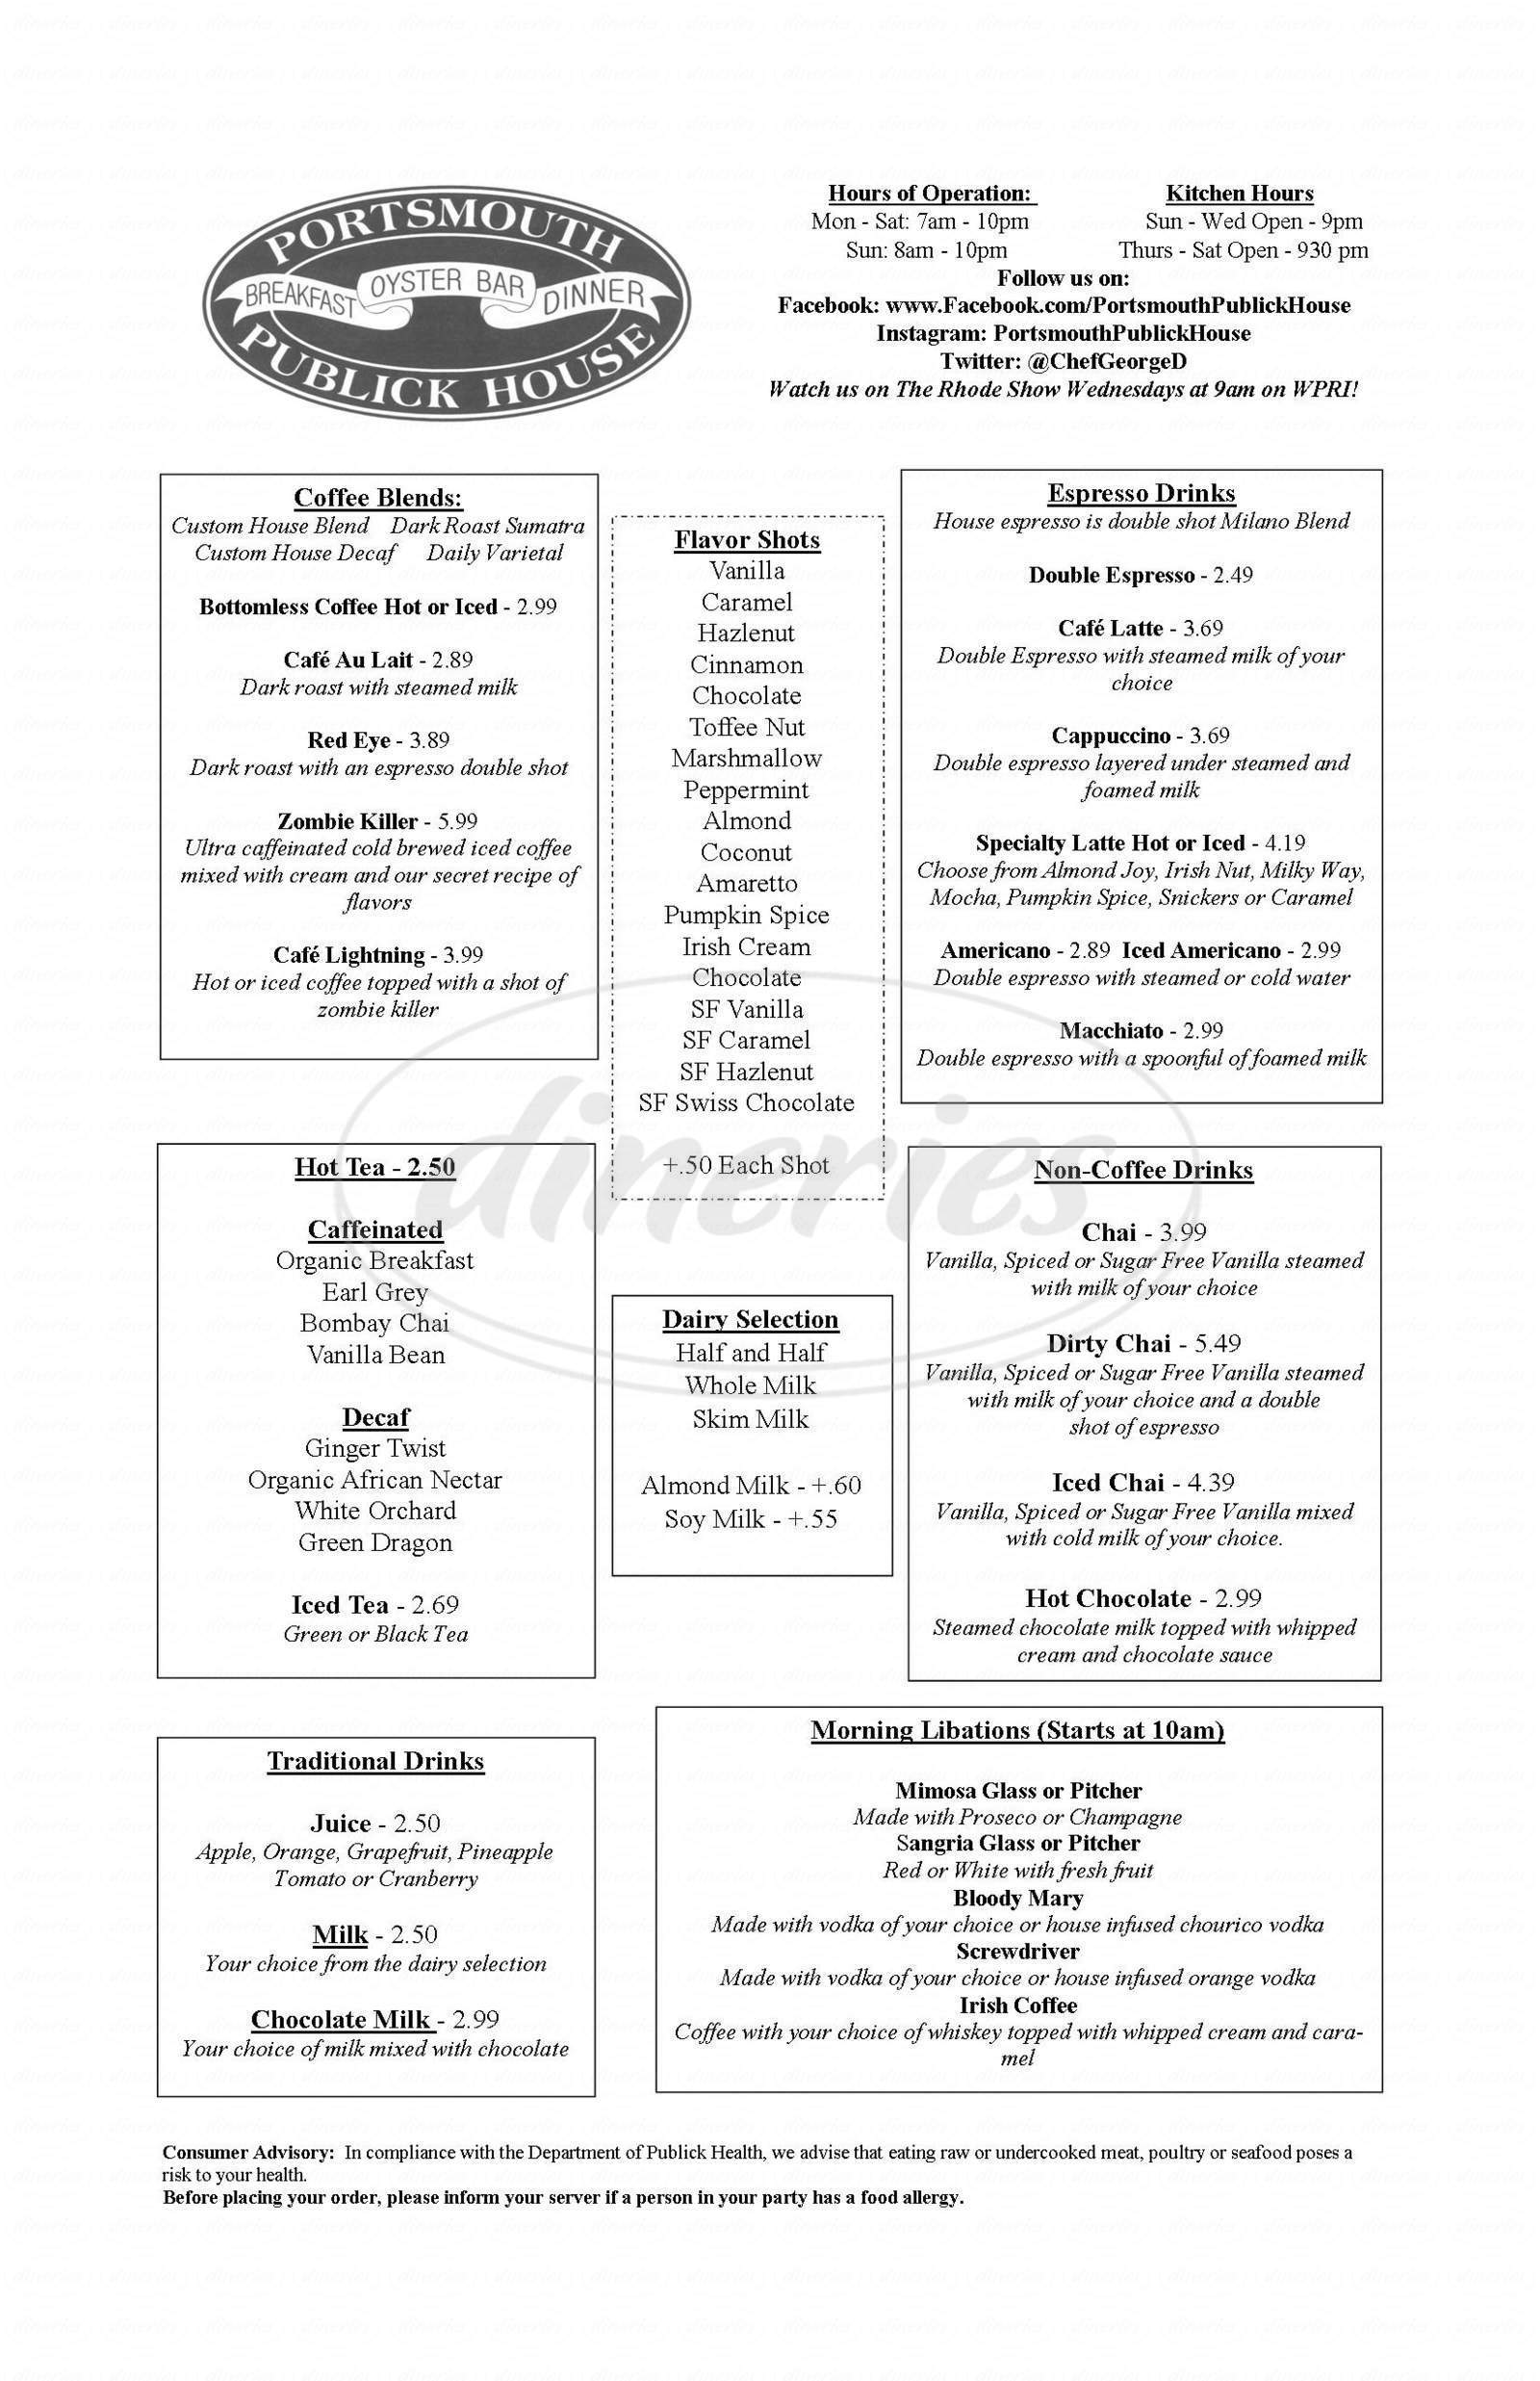 menu for Portsmouth Publick House